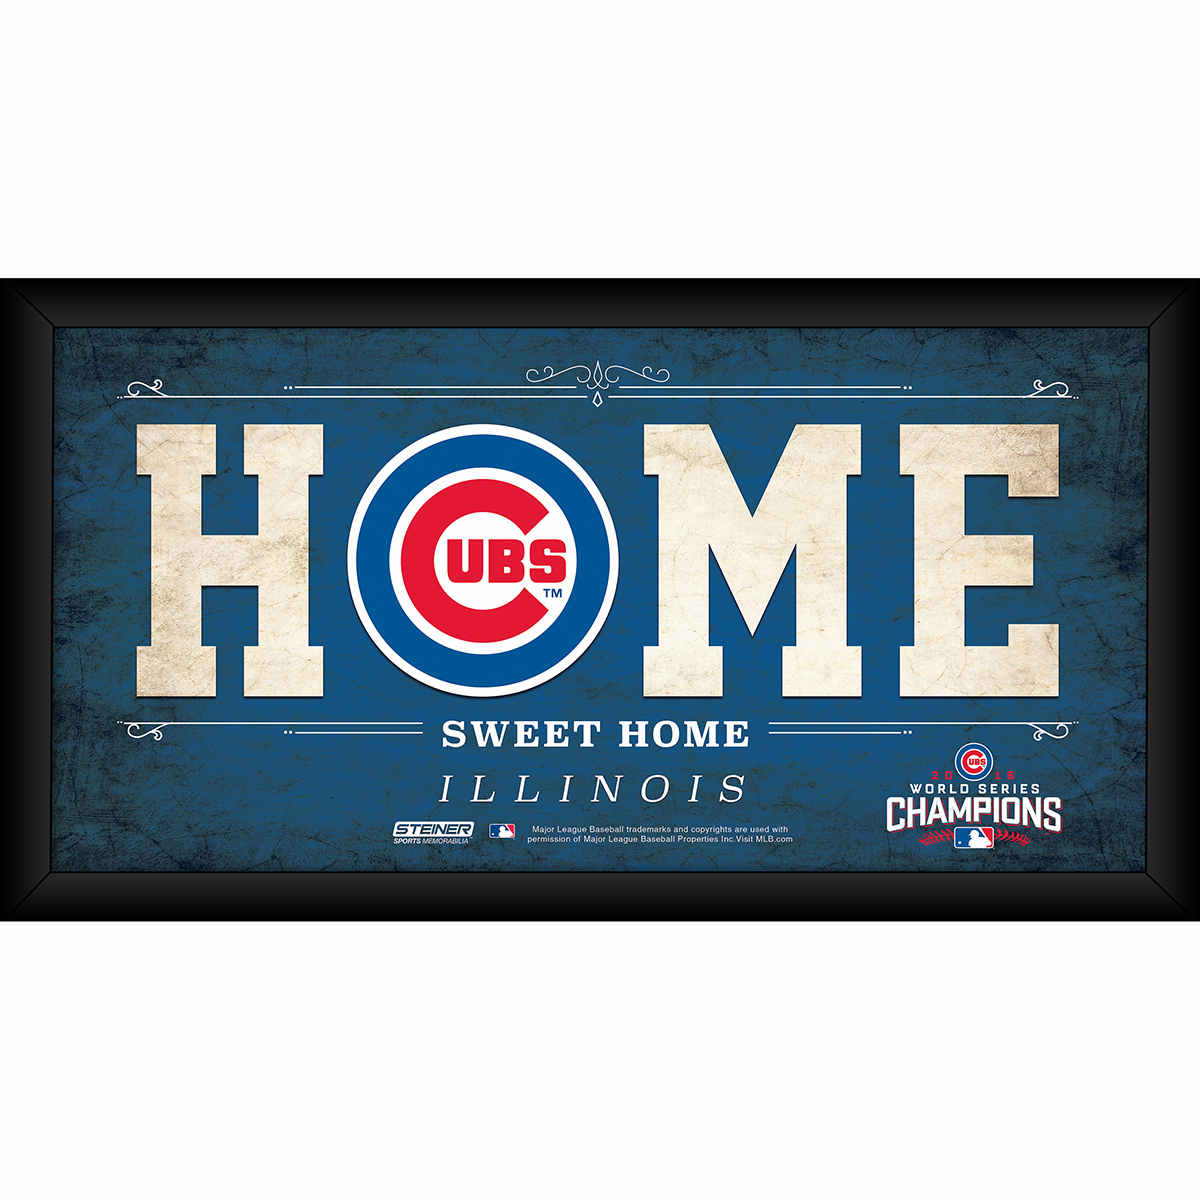 """Chicago Cubs 2016 World Series Champions Home Sweet Home 10"""" x 20"""" Framed Sign by Steiner"""